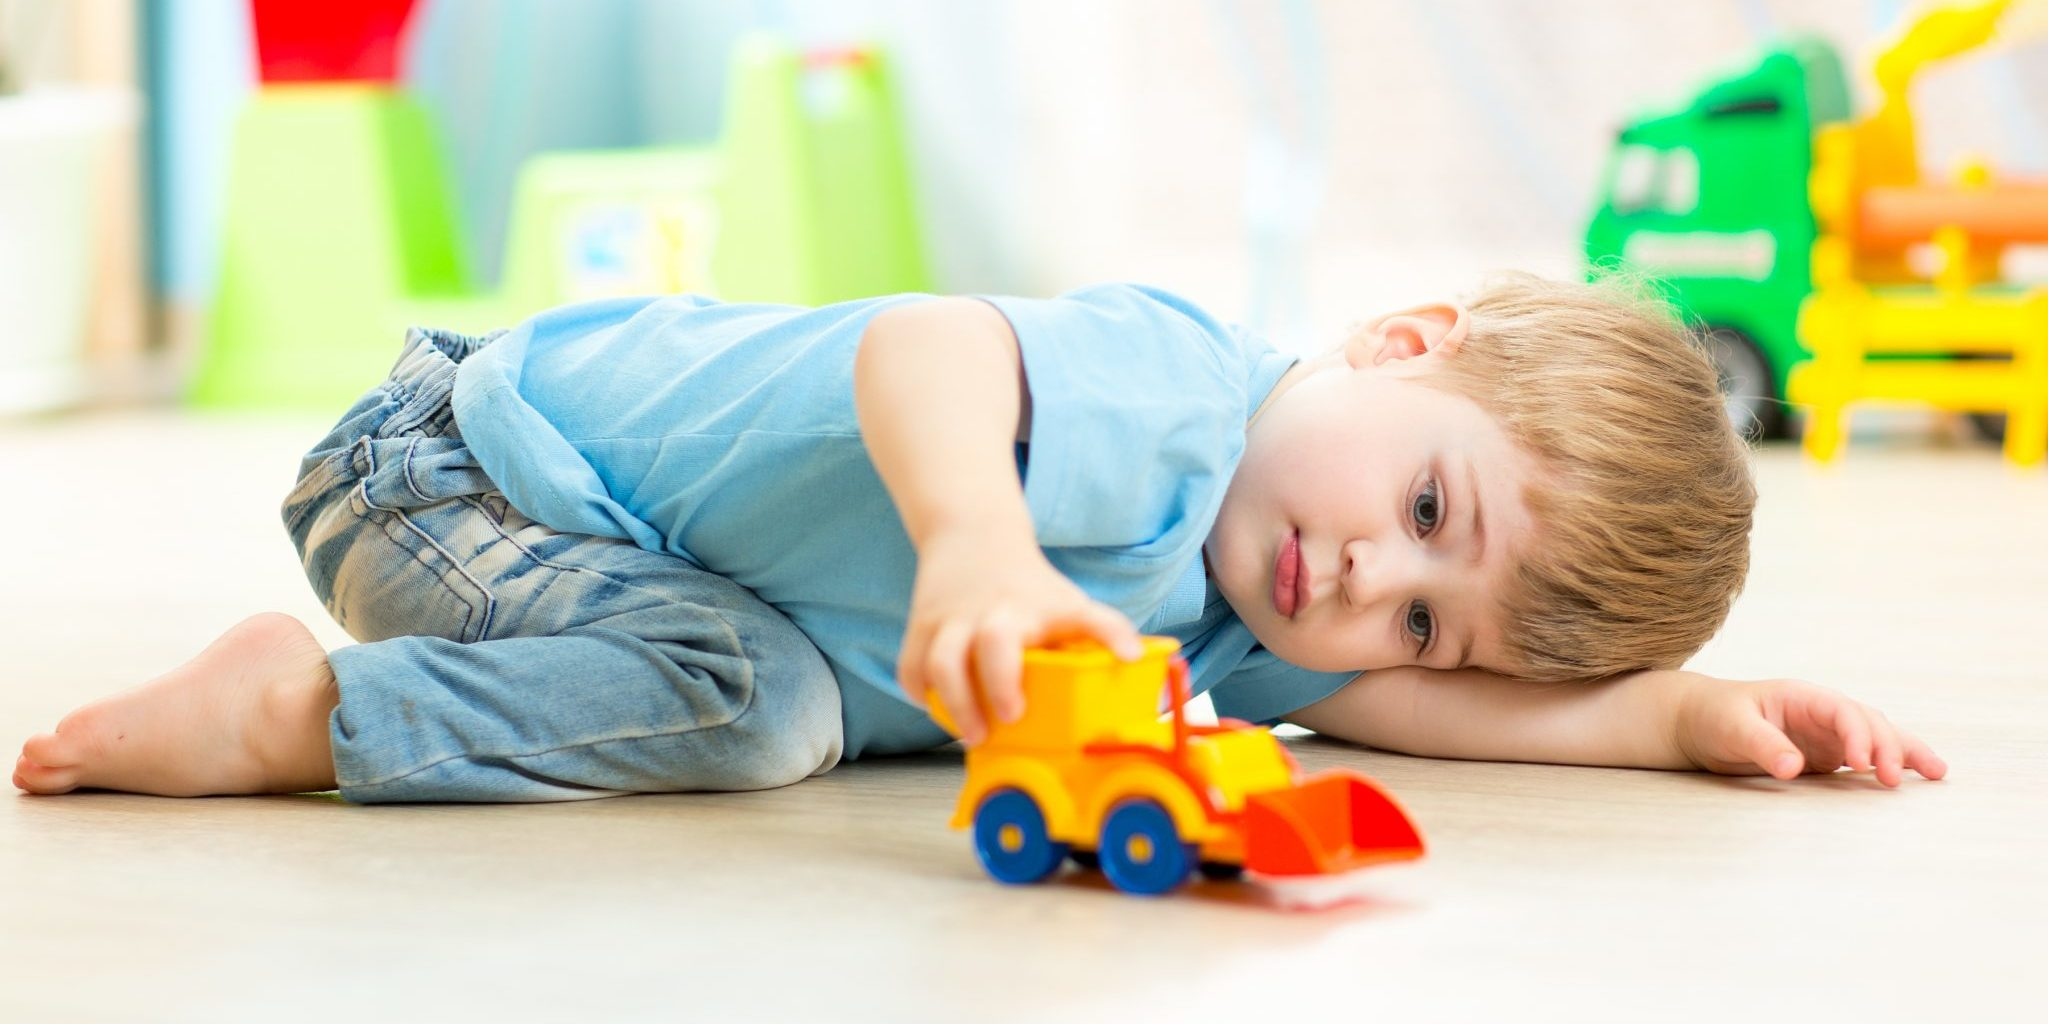 bigstock-child-boy-toddler-playing-with-78441758